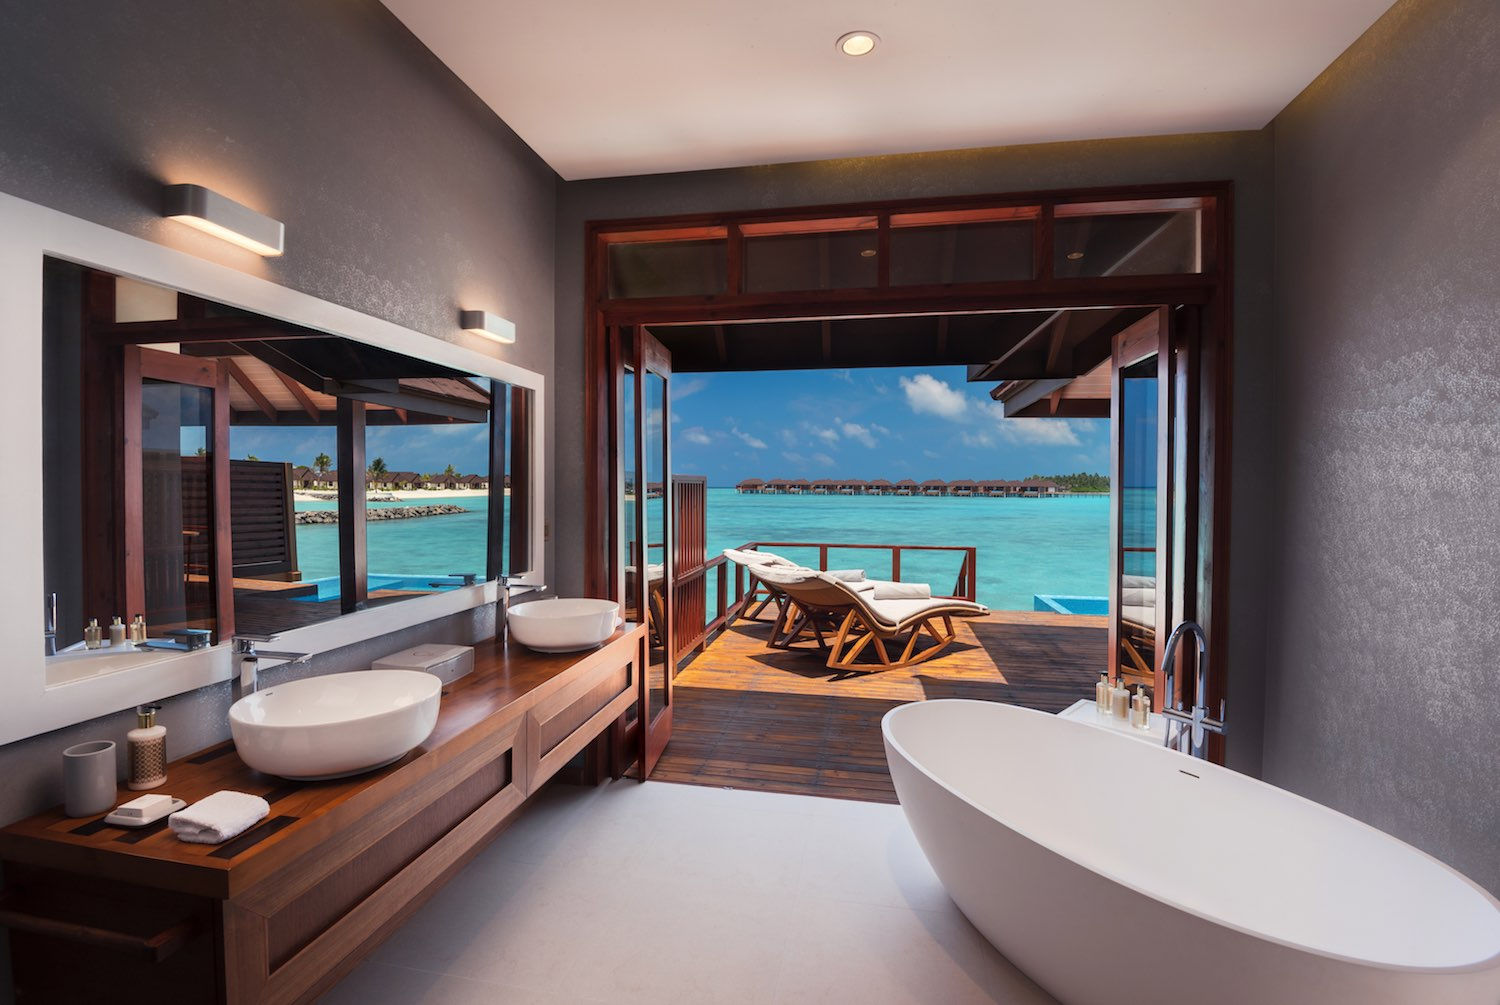 maldives-varu-by-atmosphere-water-villa-with-pool-bathroom-view-holiday-honeymoon-vacation-invite-to-paradise.jpg